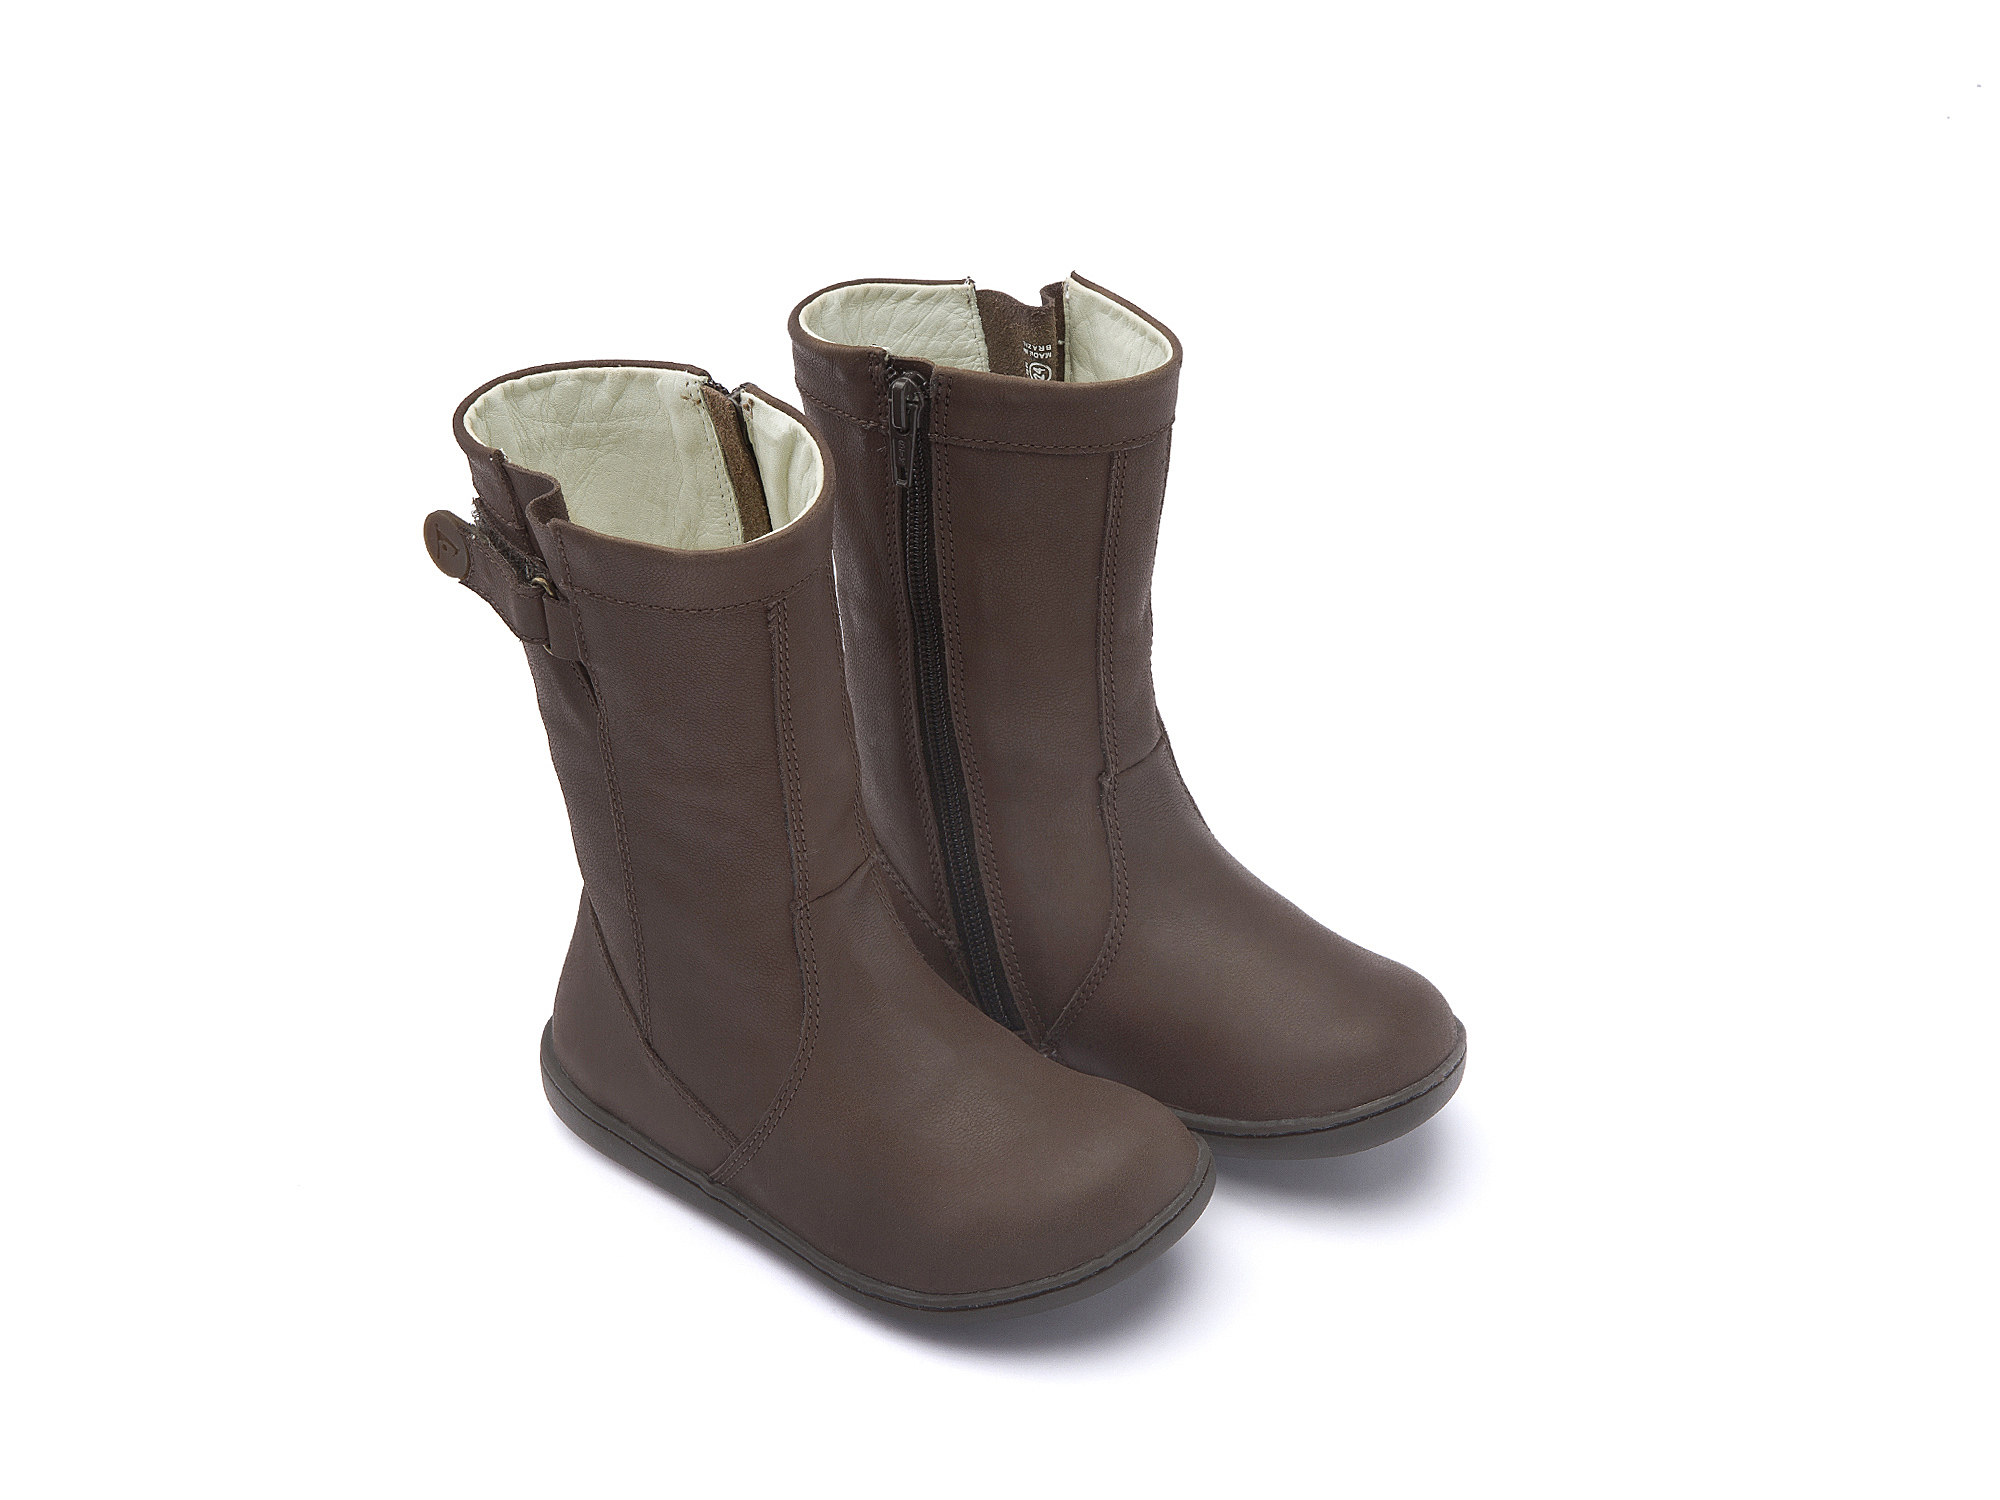 Bota Little Cold Old Brown  Toddler 2 à 4 anos - 0